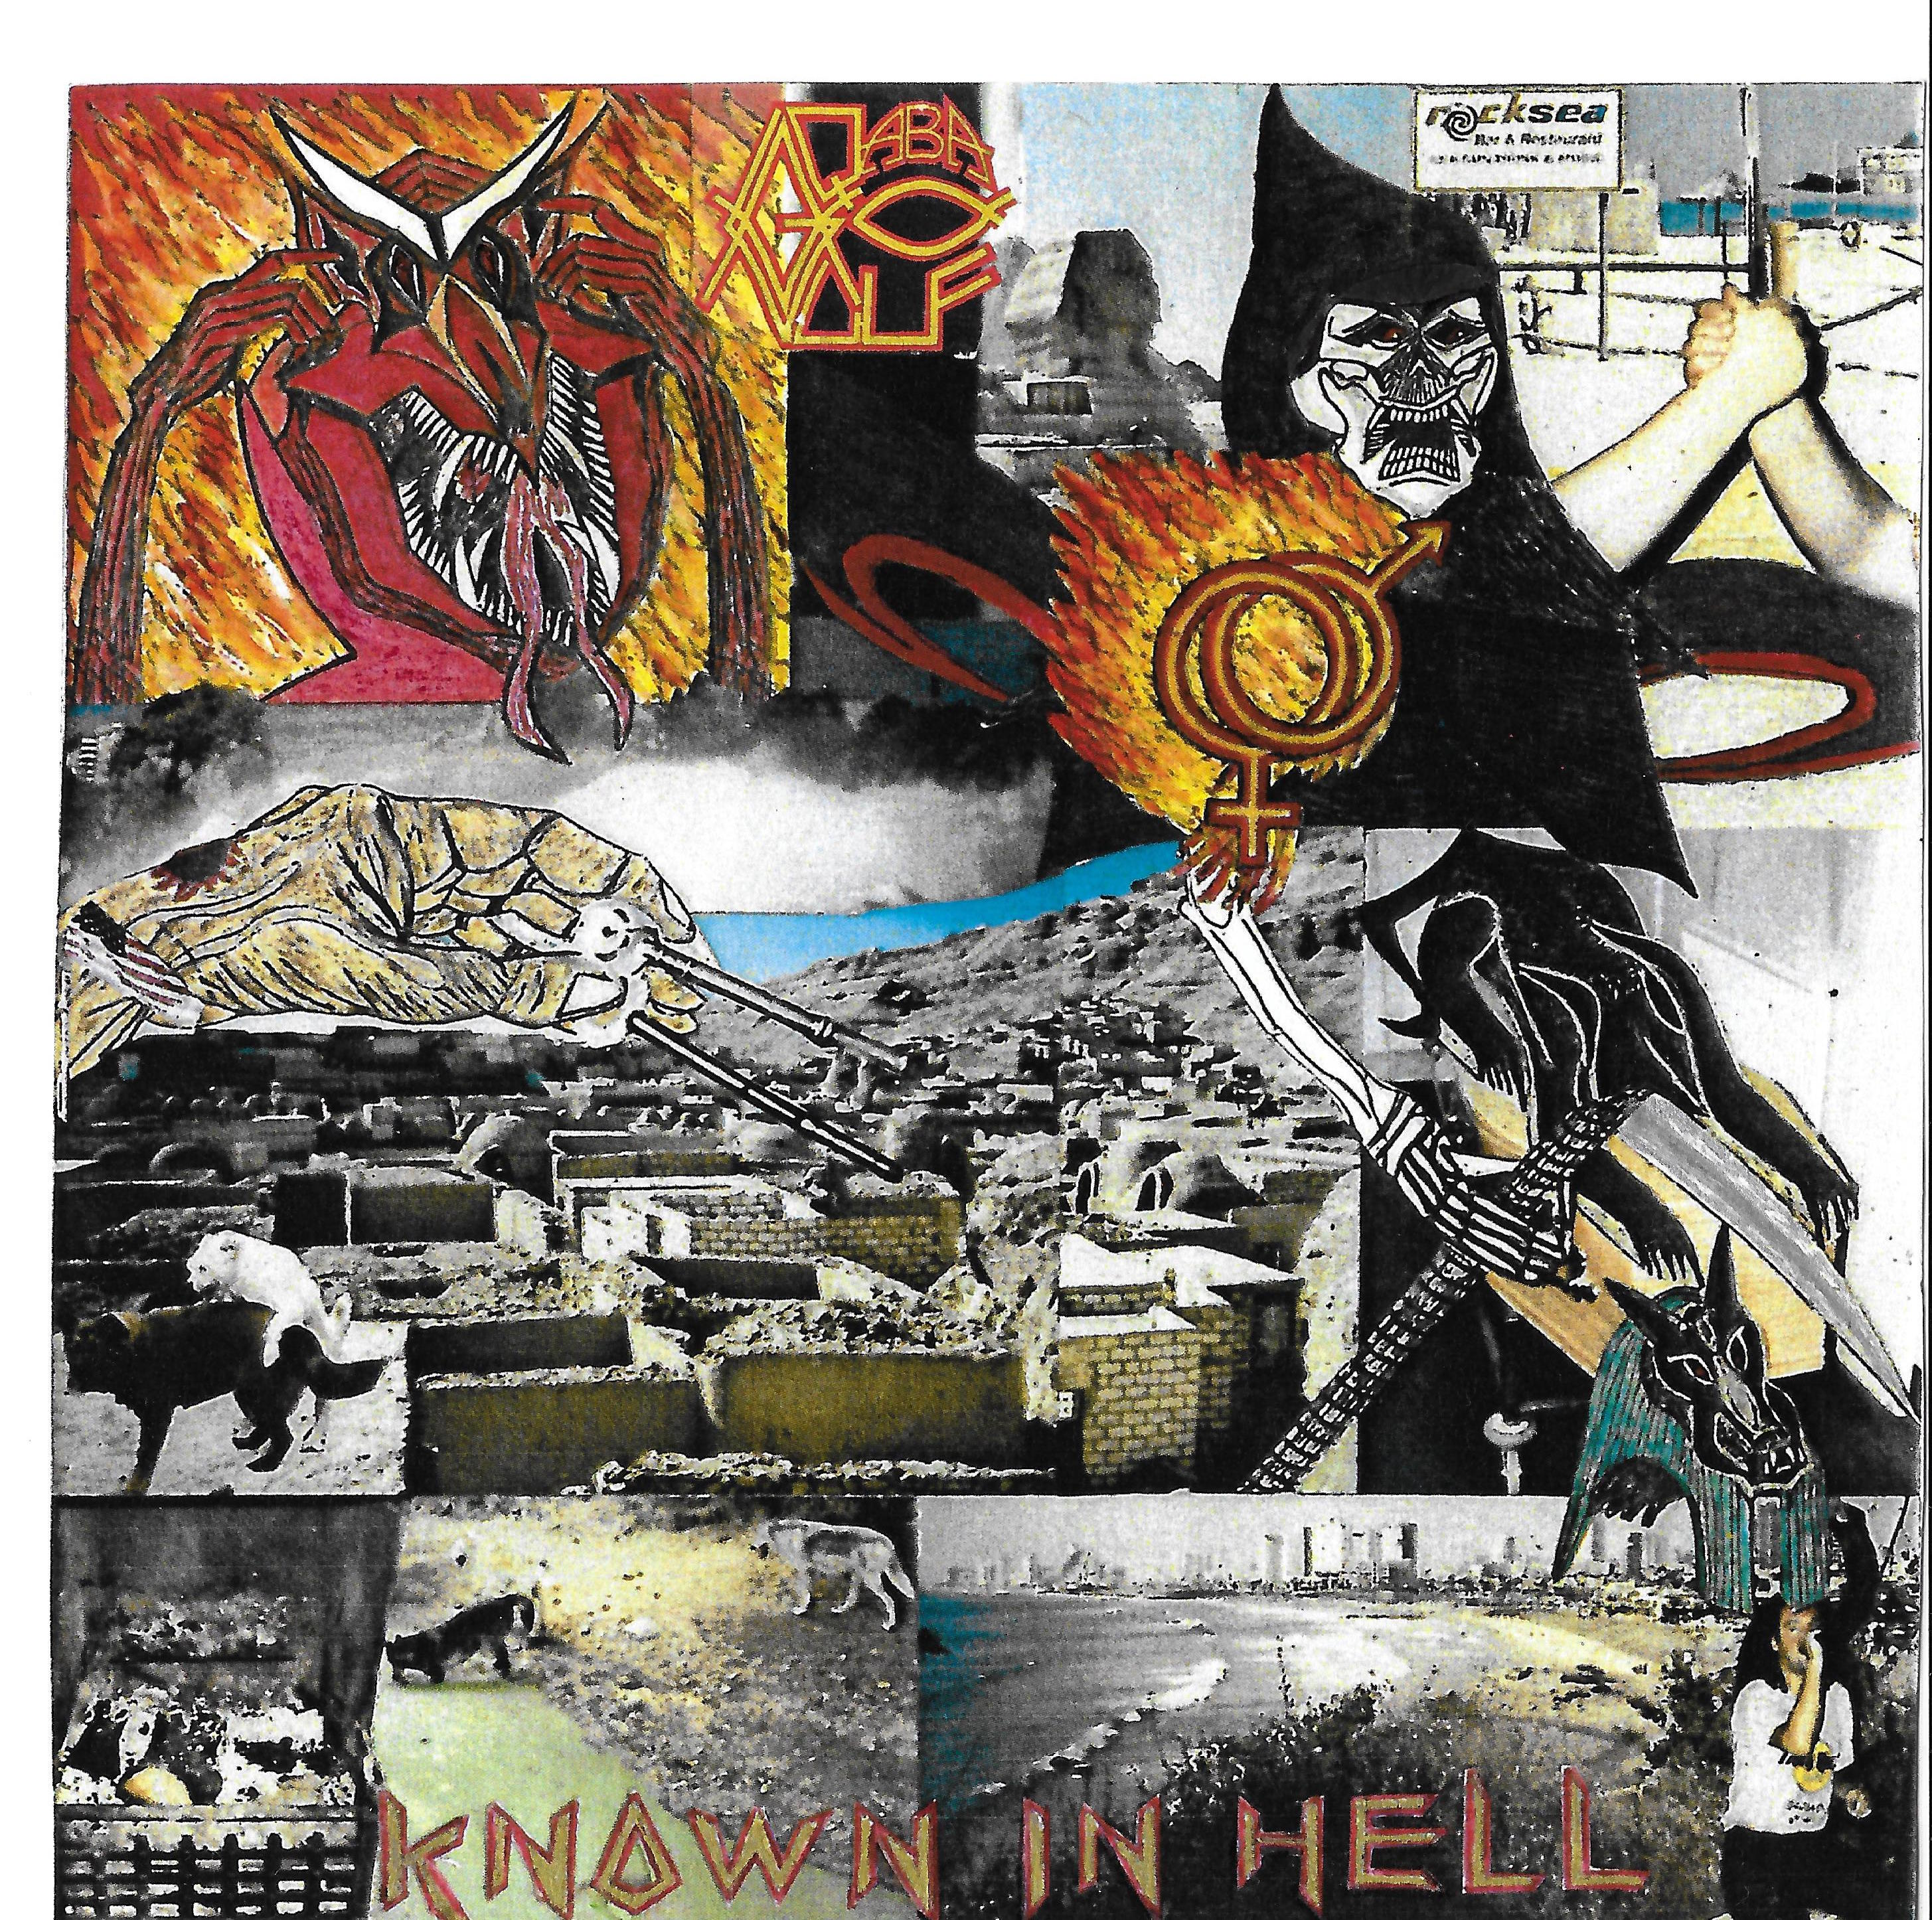 KNOWN IN HELL front cover artwork